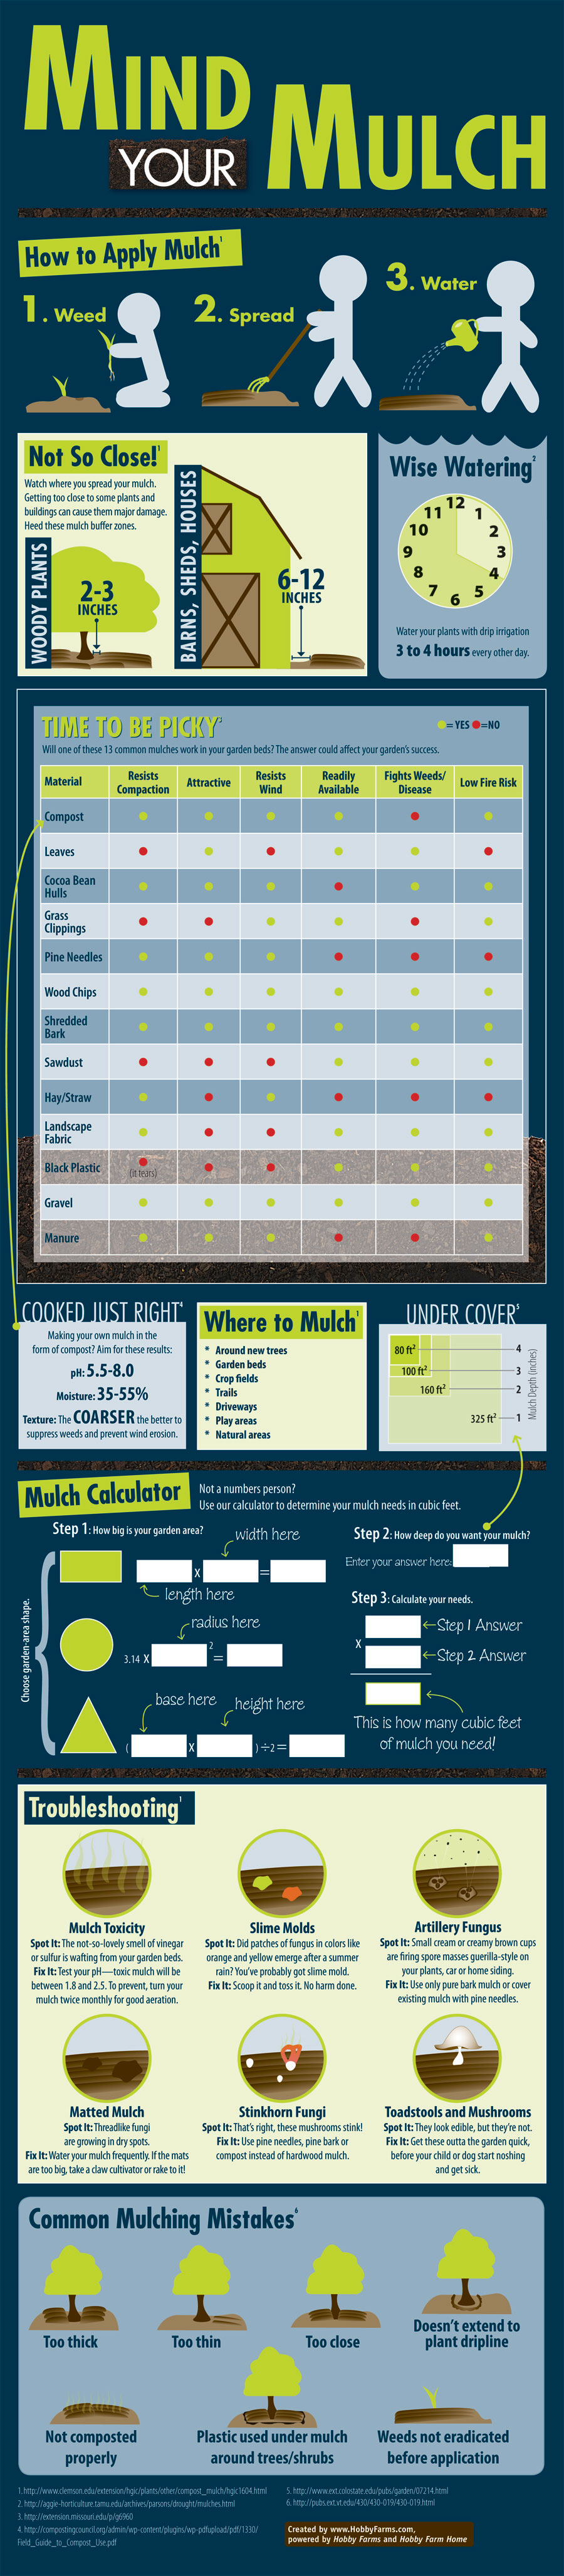 mulch-infographic_900